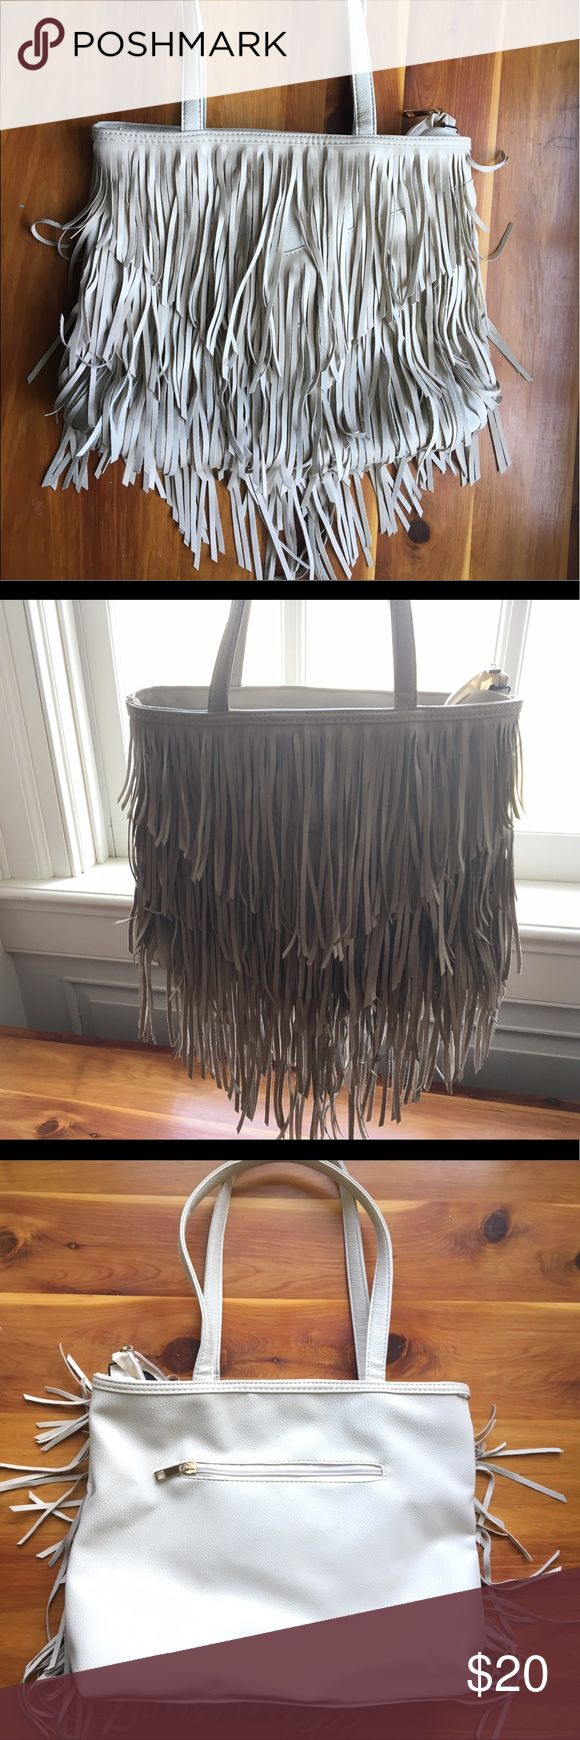 Off-white fringe bohemian handbag UrbanOG This is a never before used handbag. It has a very slightly off white color, fringe all over the front, a zipper on the back, and a black fabric interior. 🌙 UrbanOG Bags Shoulder Bags